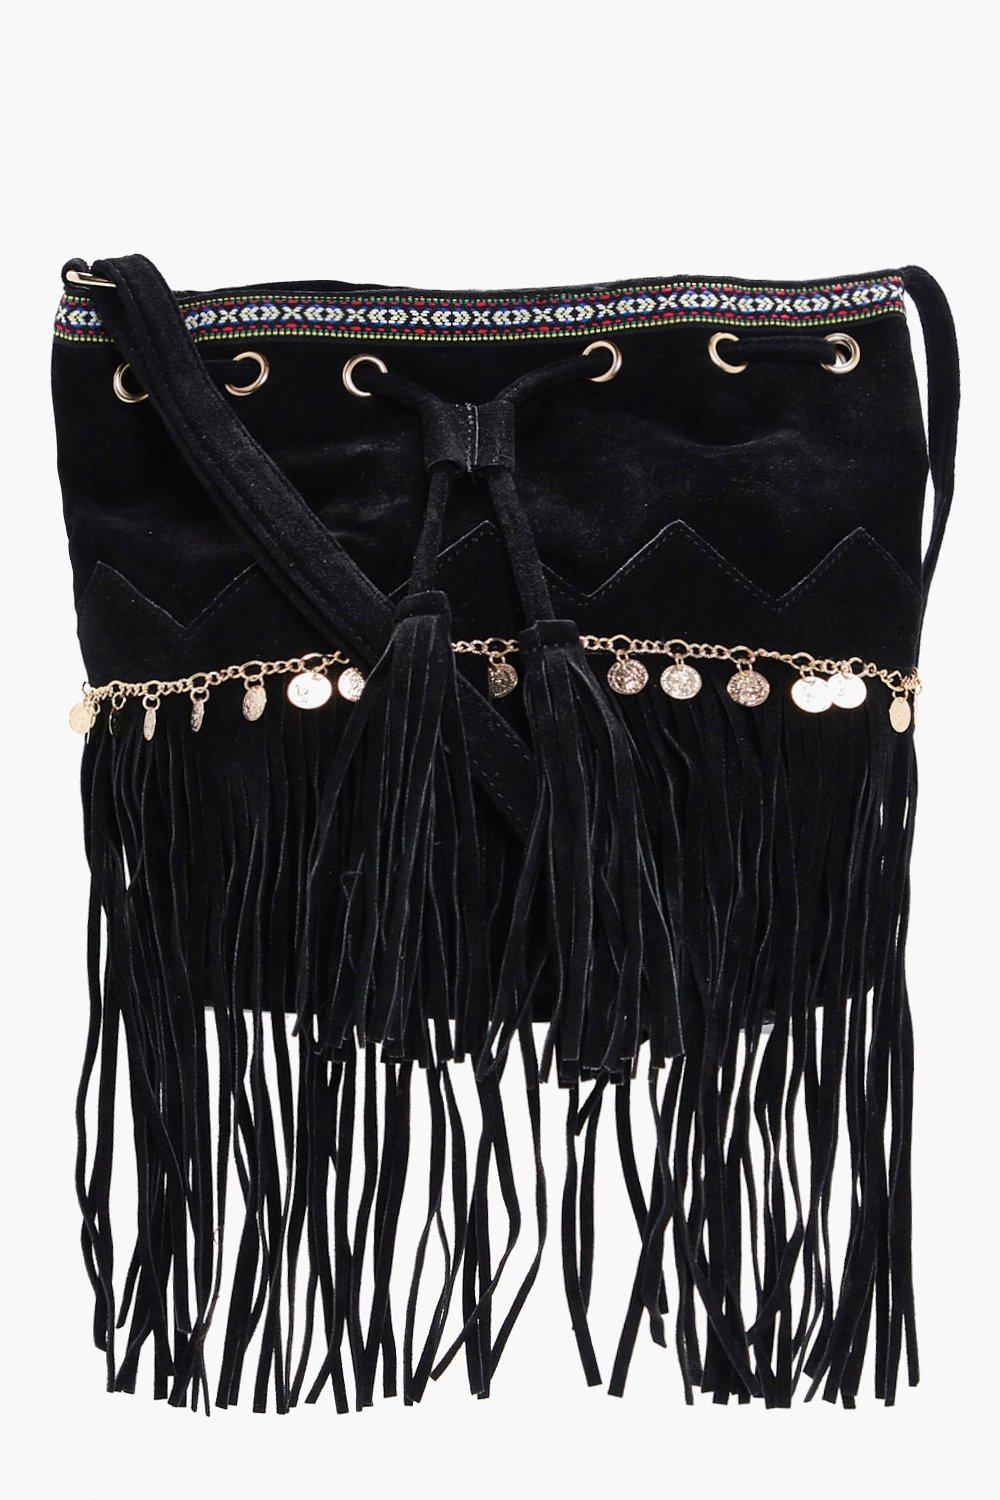 Aztec Coin Trim Tassel Buckle Bag - black - Katie